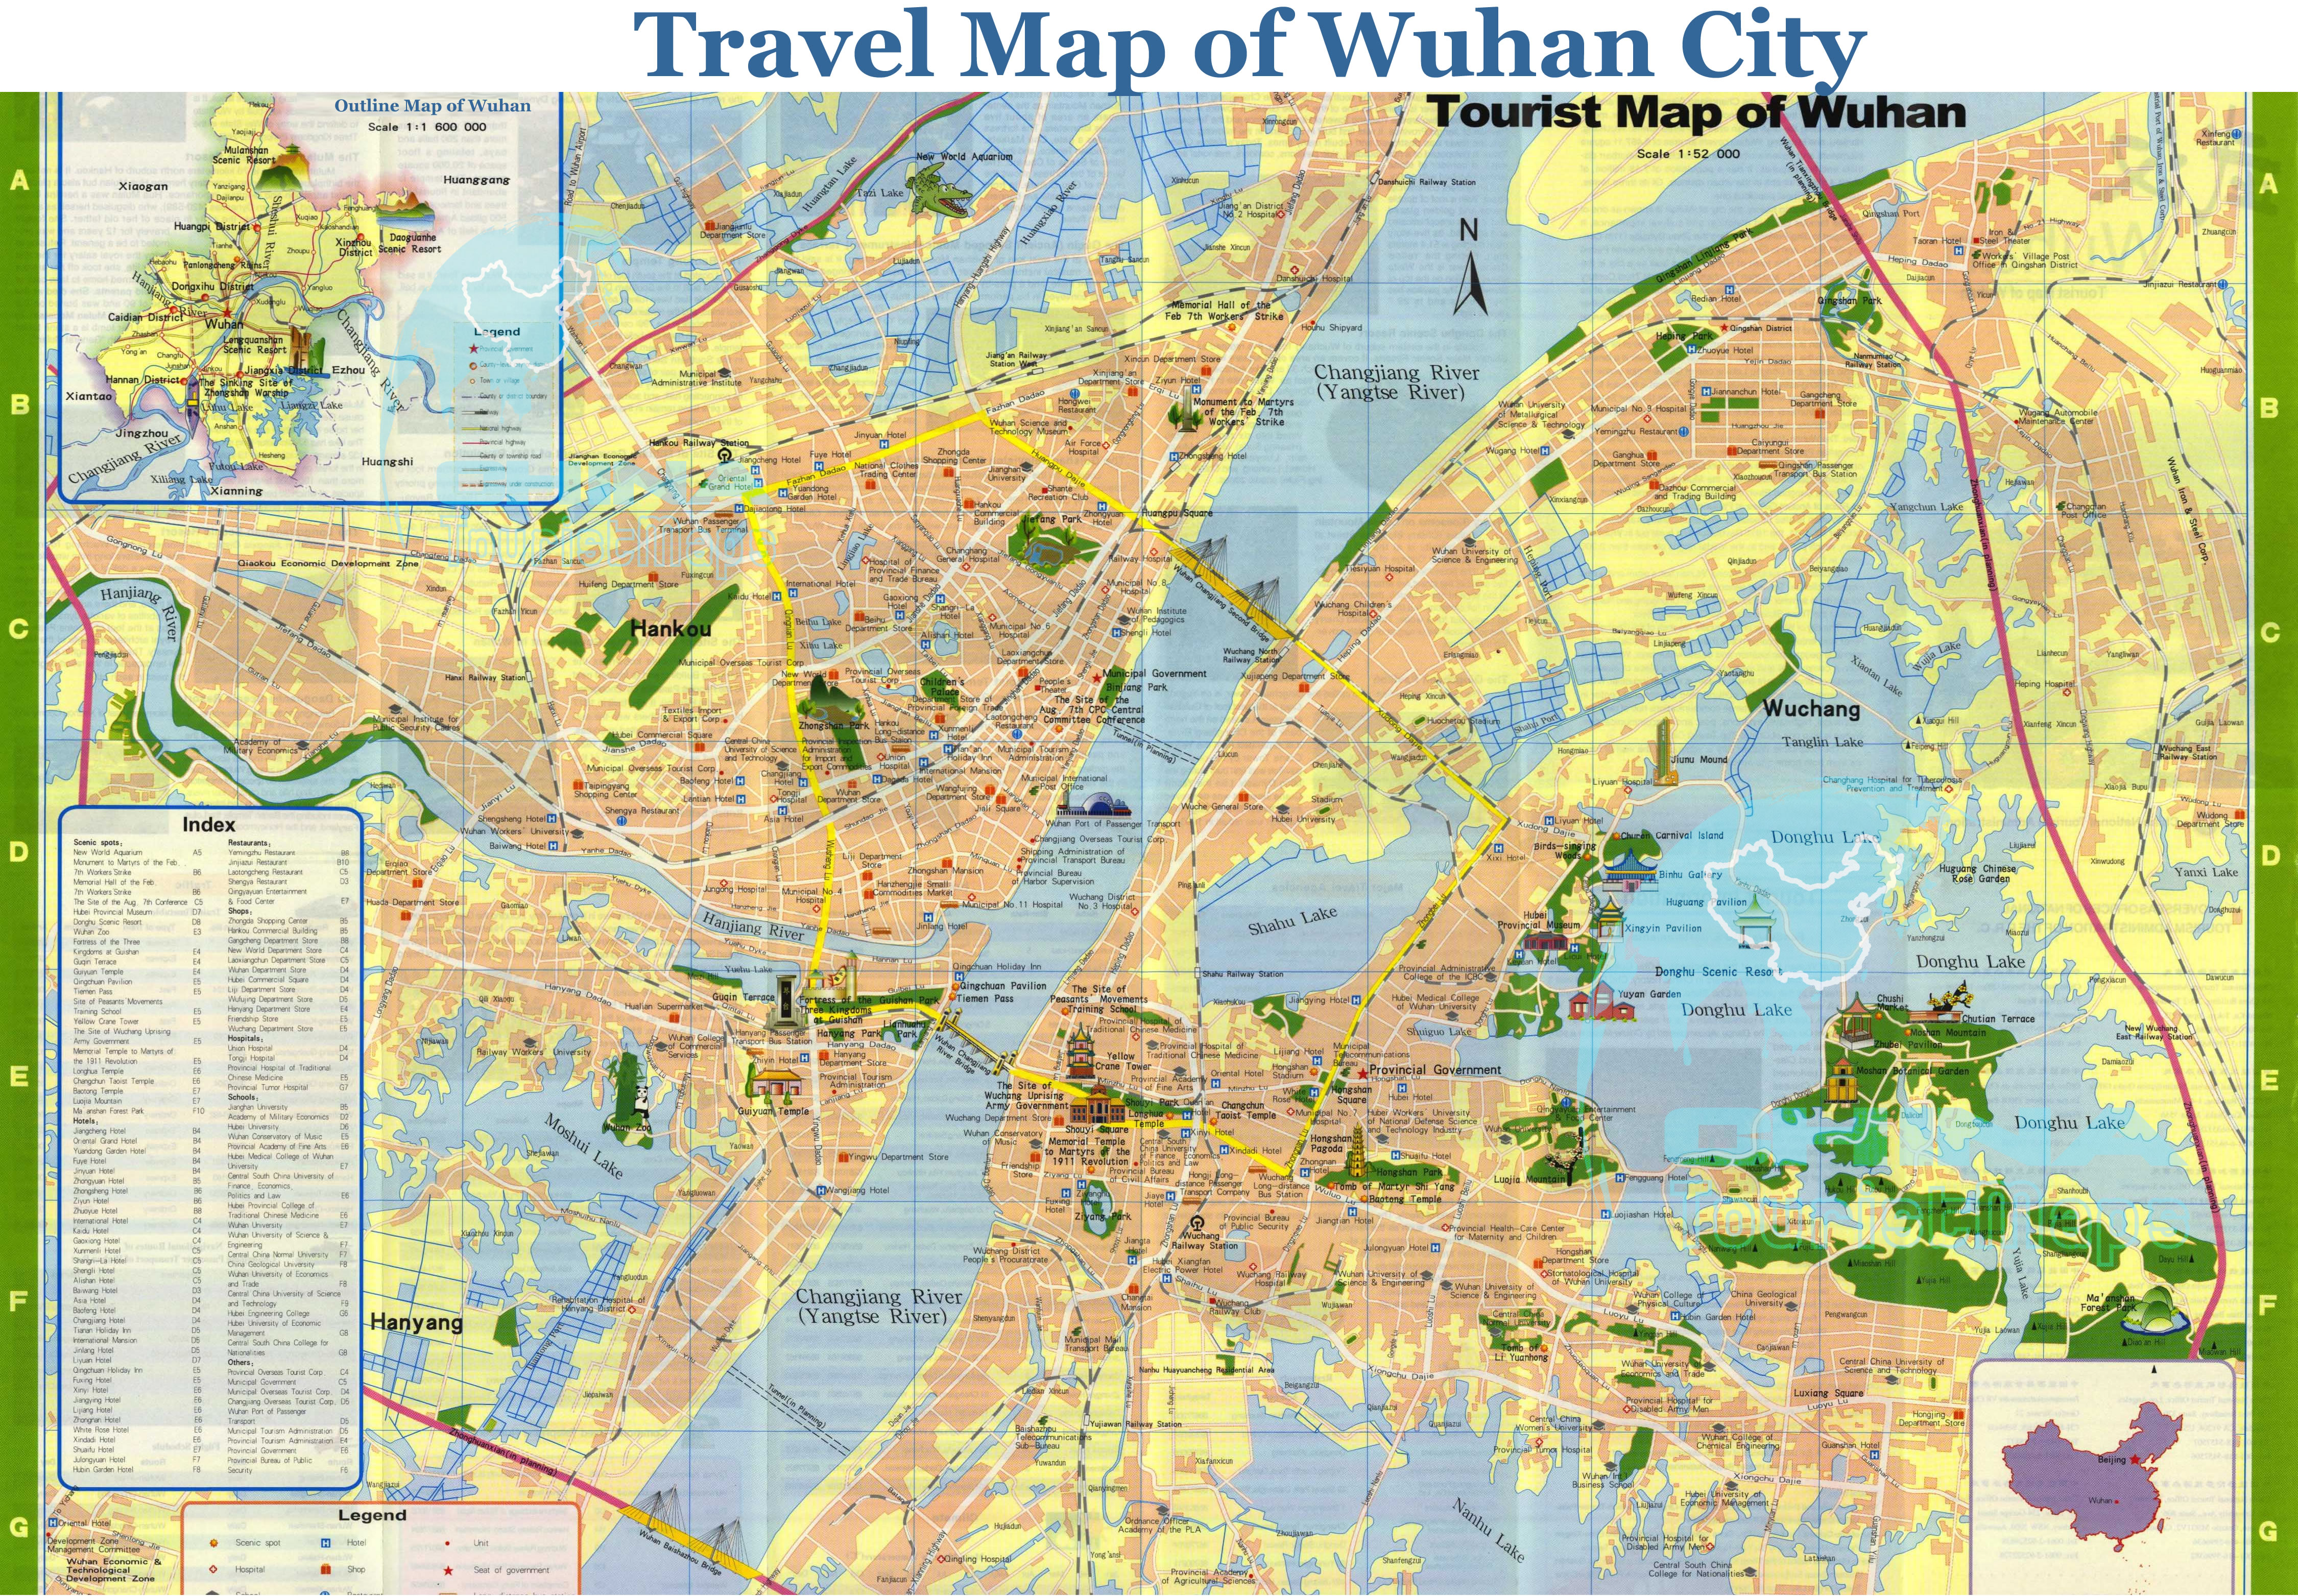 Detailed Travel Map of Wuhan Wuhan driving direction Map Wuhan